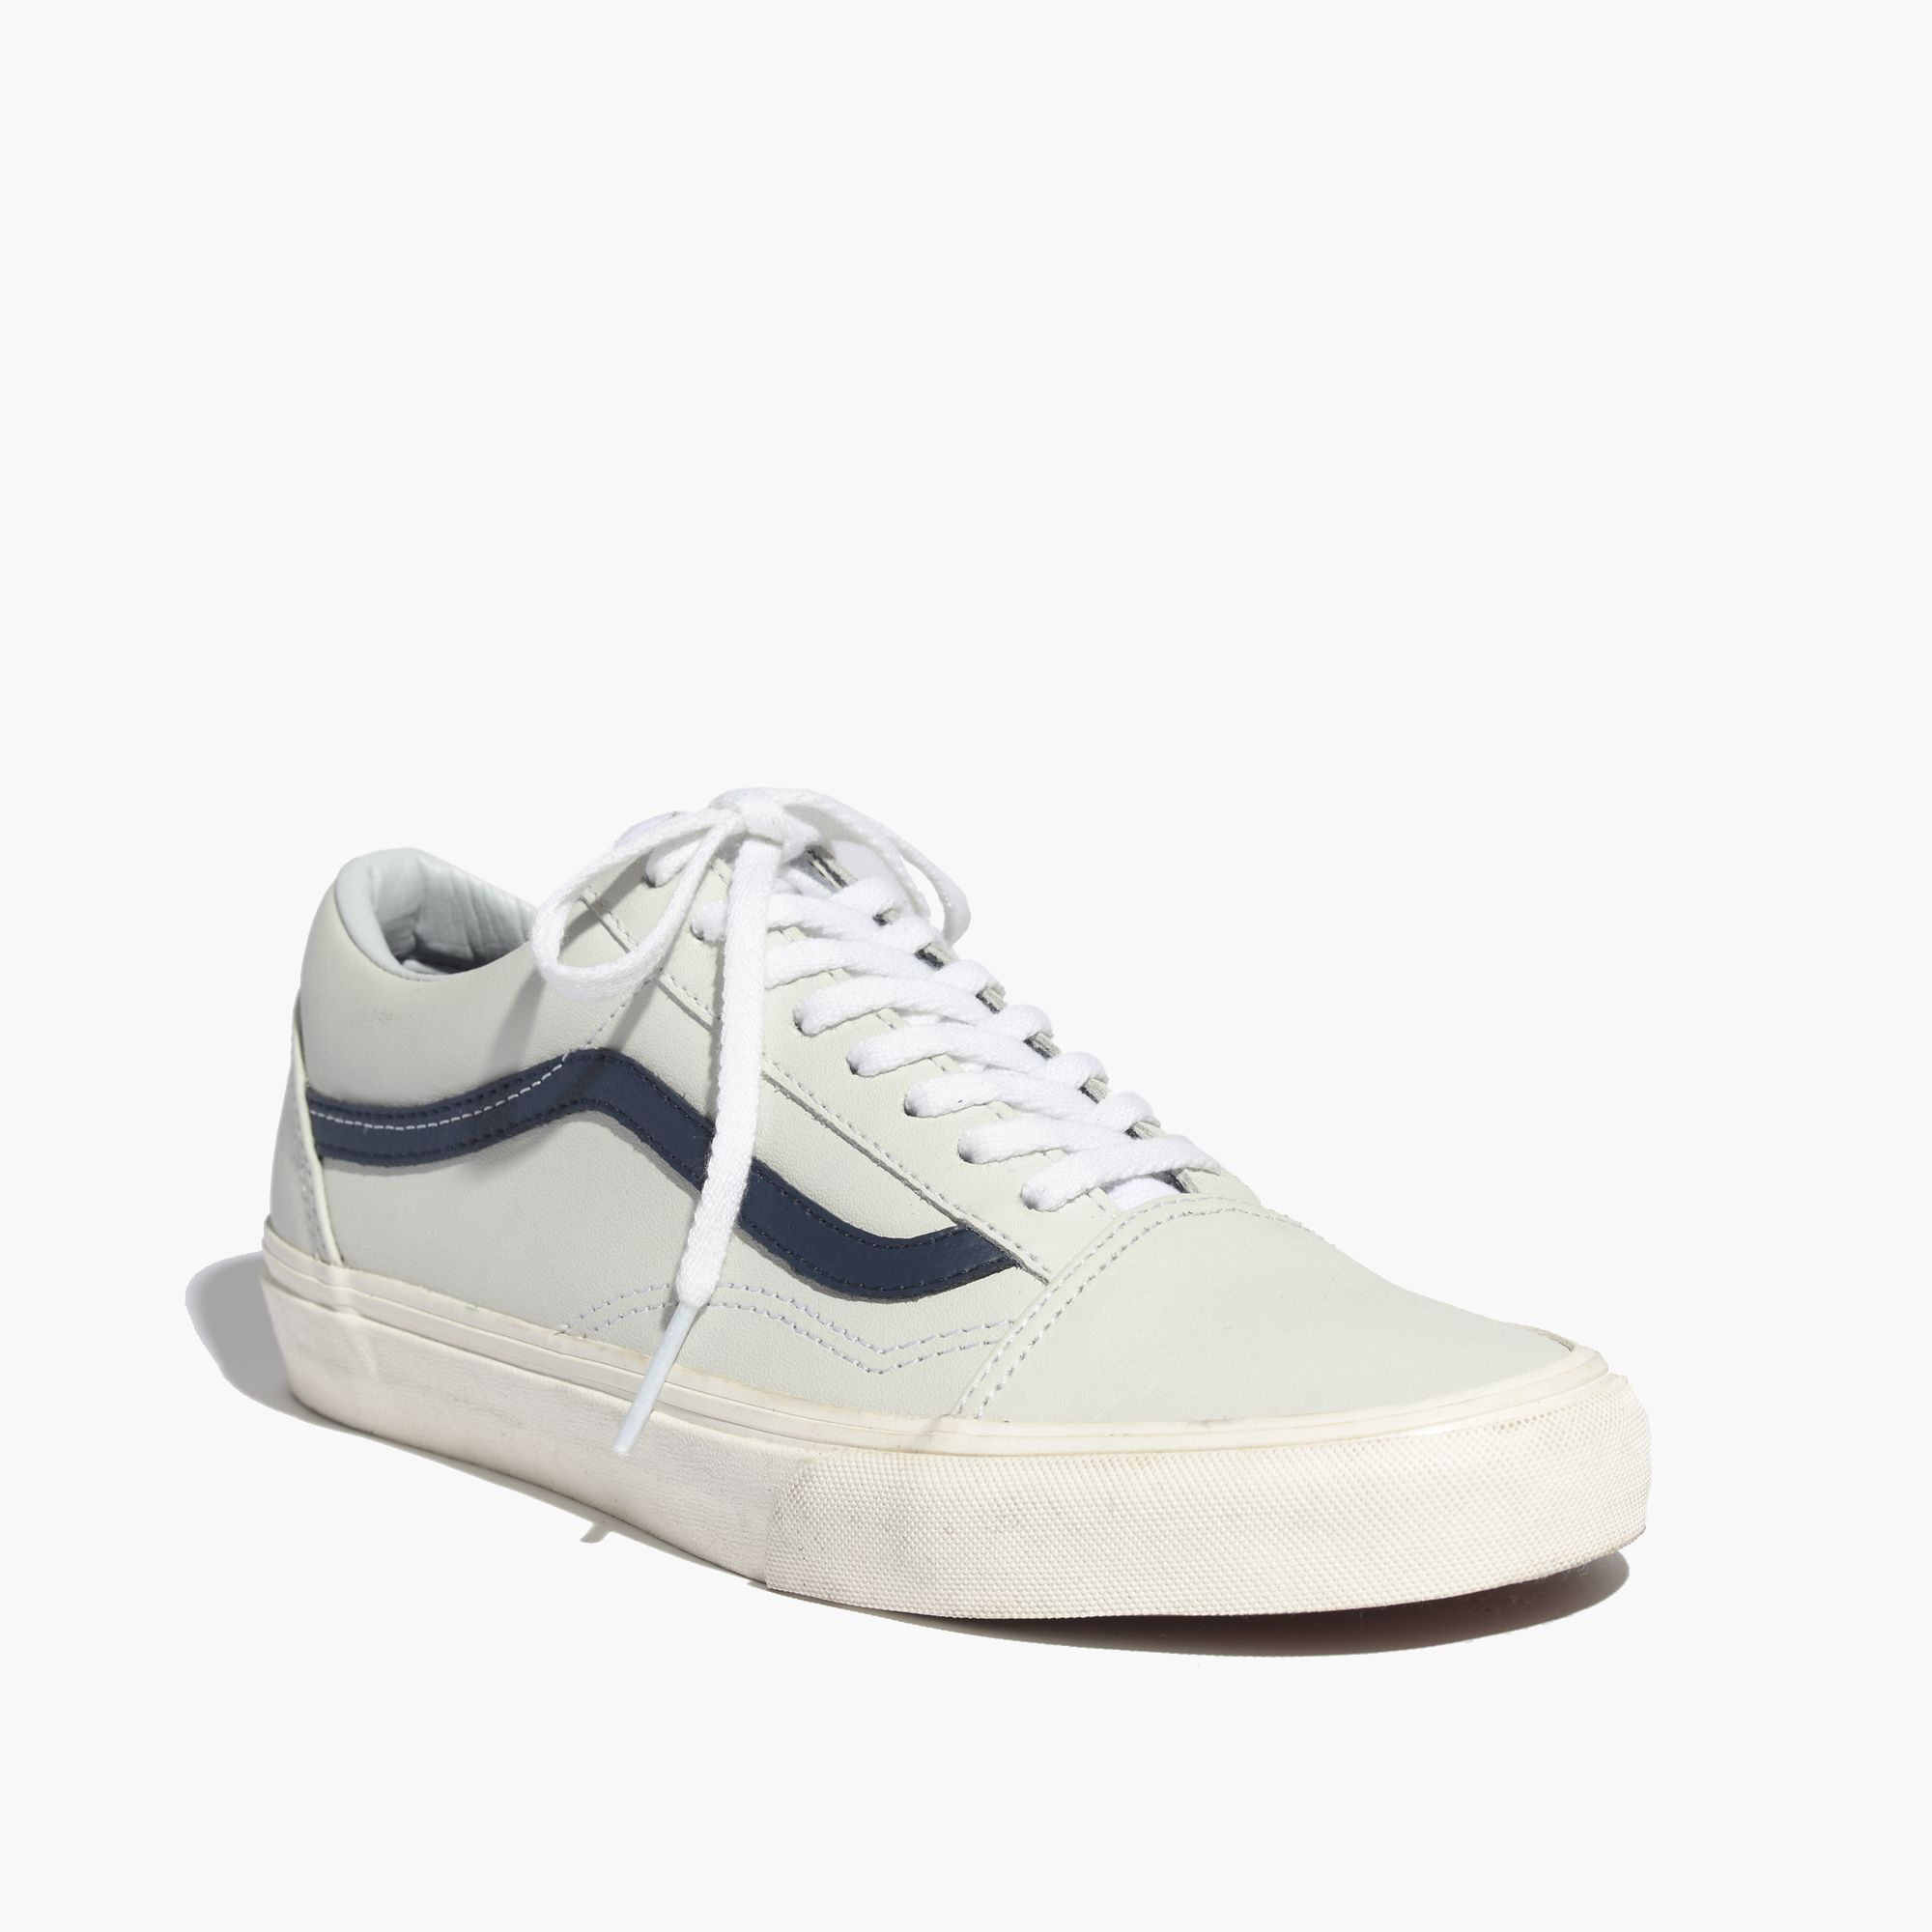 Lyst Madewell Vans Old Skool Lace Up Sneakers In Leather In White